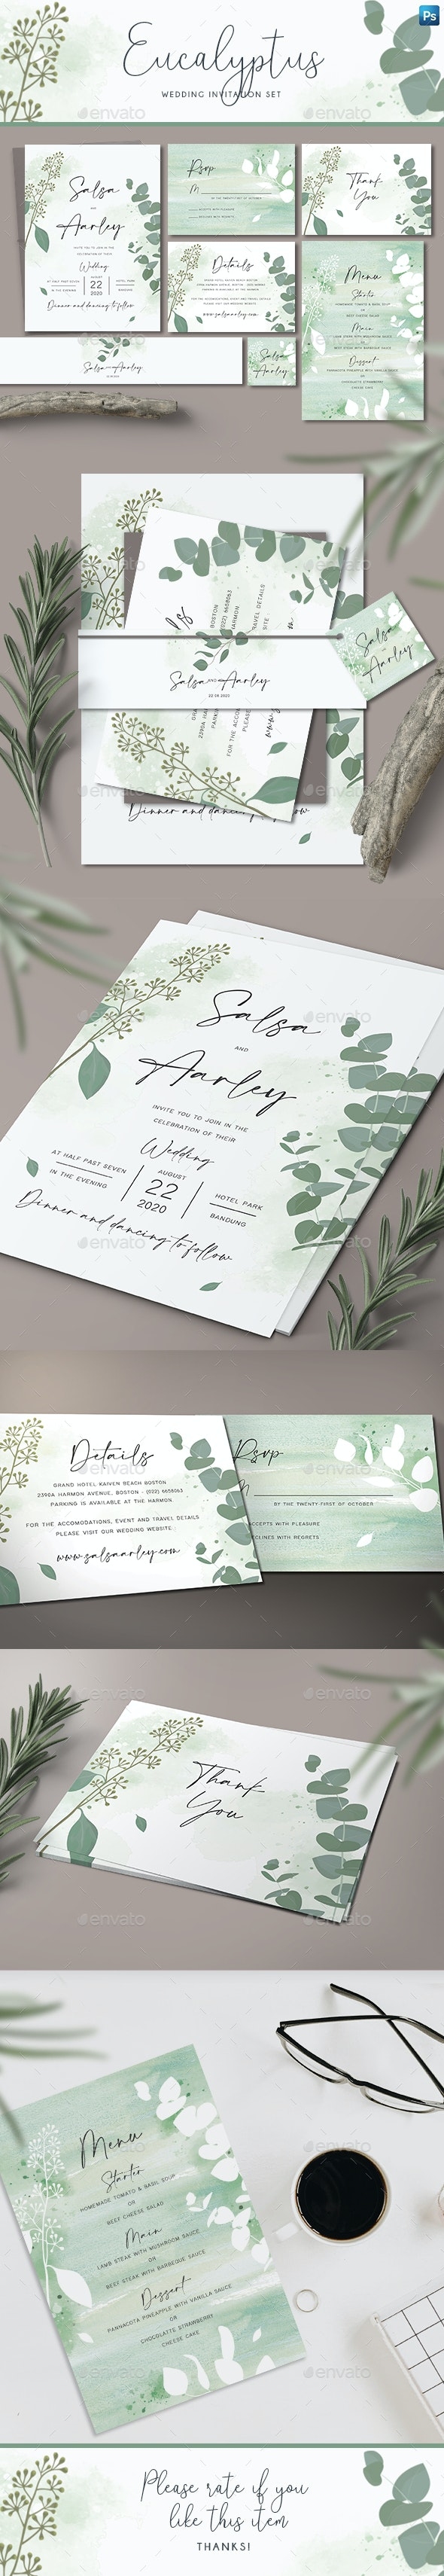 Eucalyptus Wedding Invitation Set - Weddings Cards & Invites